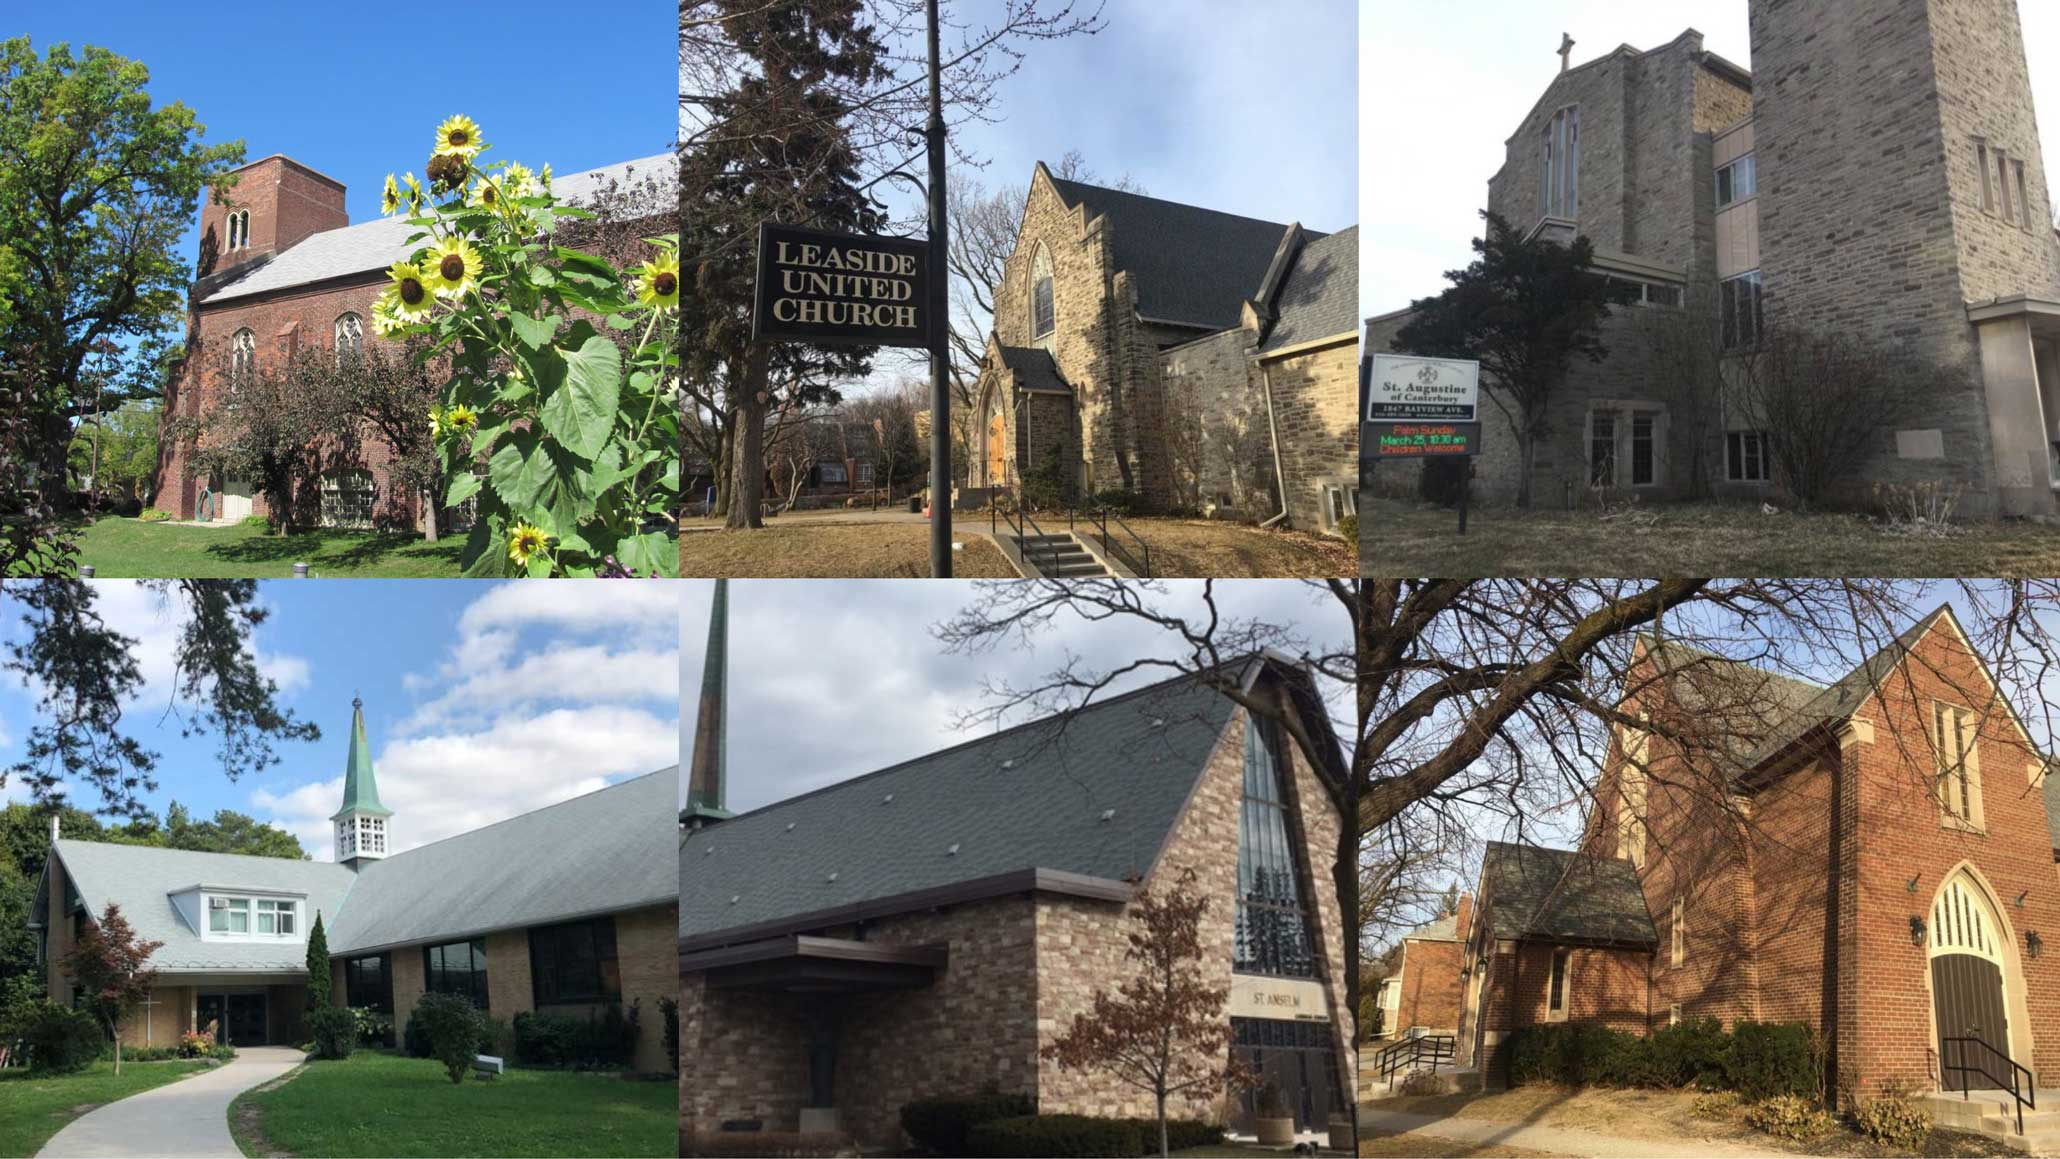 Churches of Leaside collage.